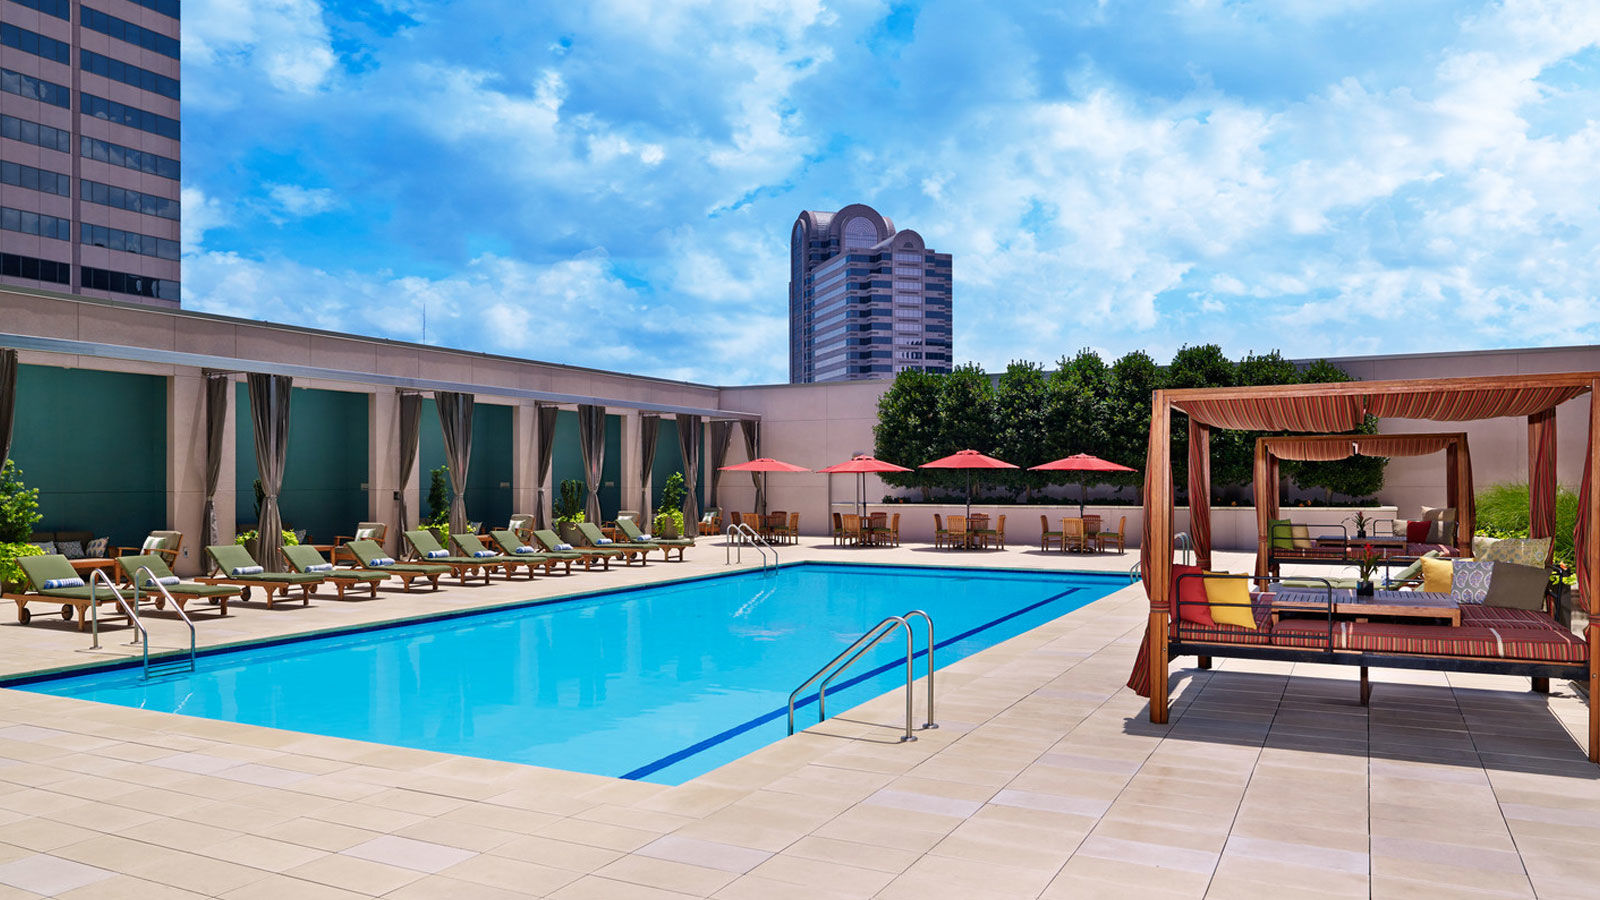 Galleria Dallas Hotel Features - Pool